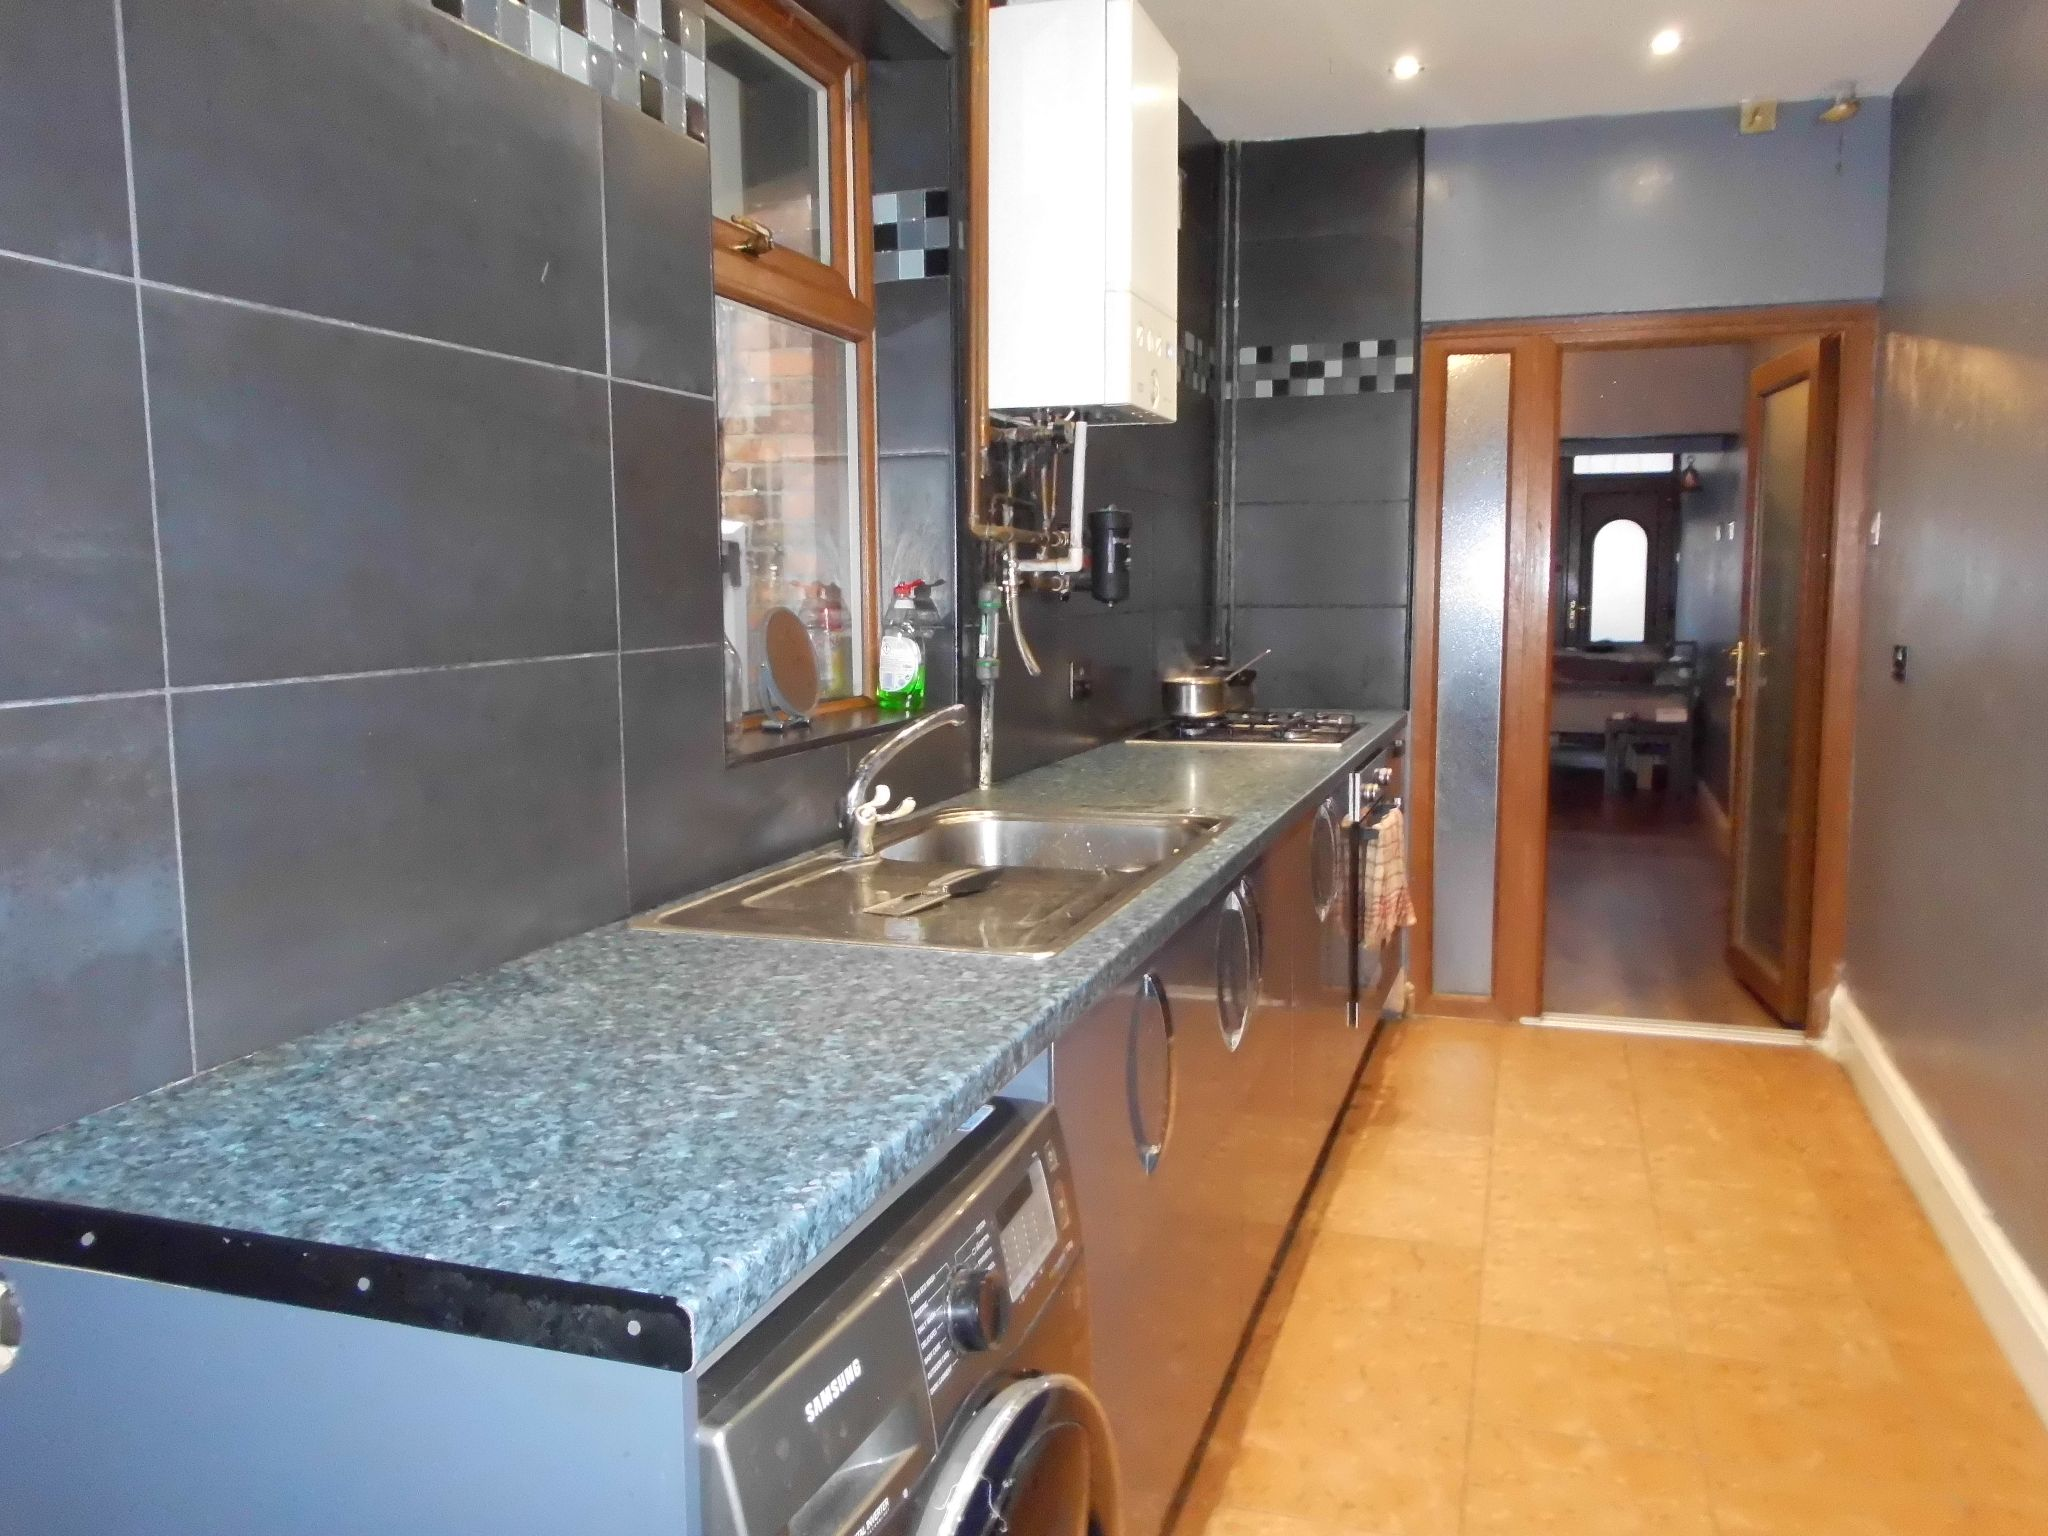 3 bedroom mid terraced house For Sale in Leicester - Photograph 4.